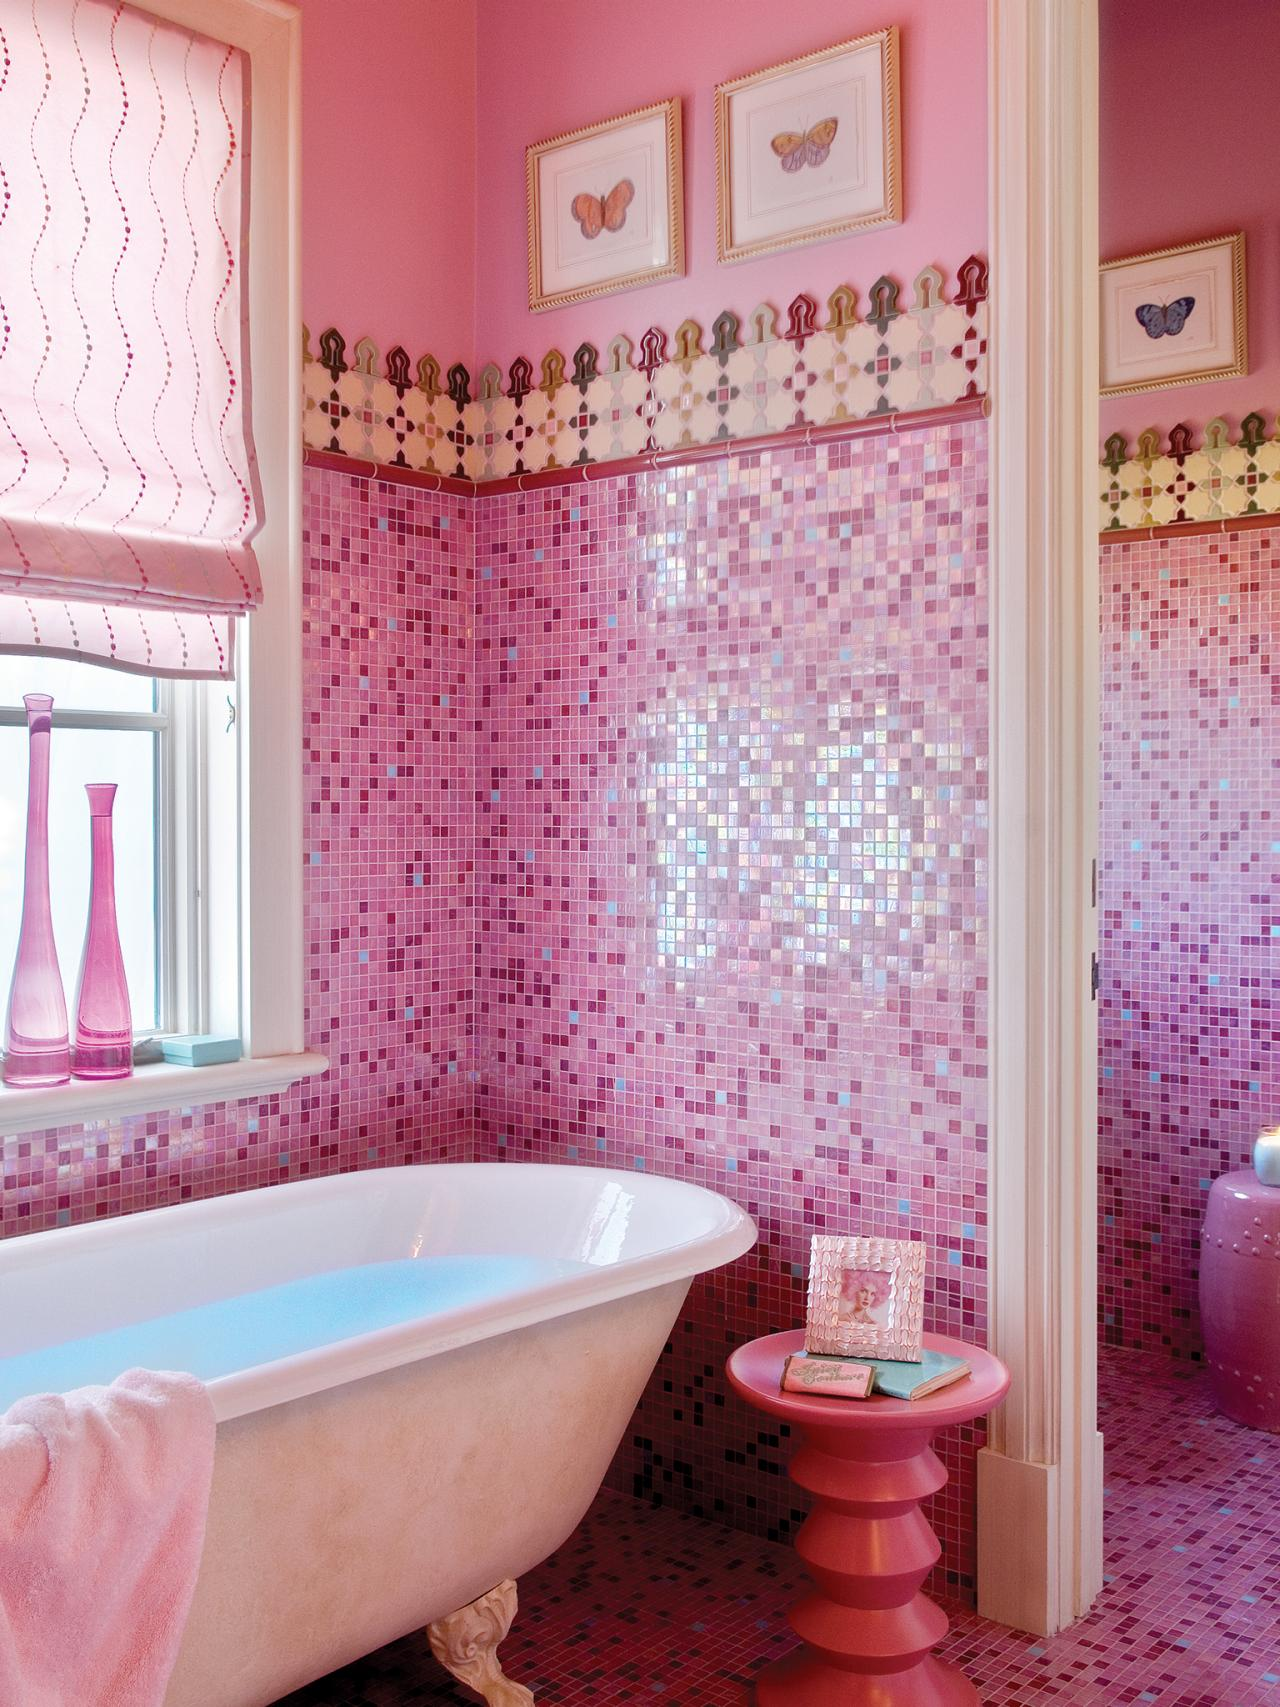 ci-barry-dixon-interiors_pg059_pink-bathroom_3x4.jpg.rend.hgtvcom.1280.1707